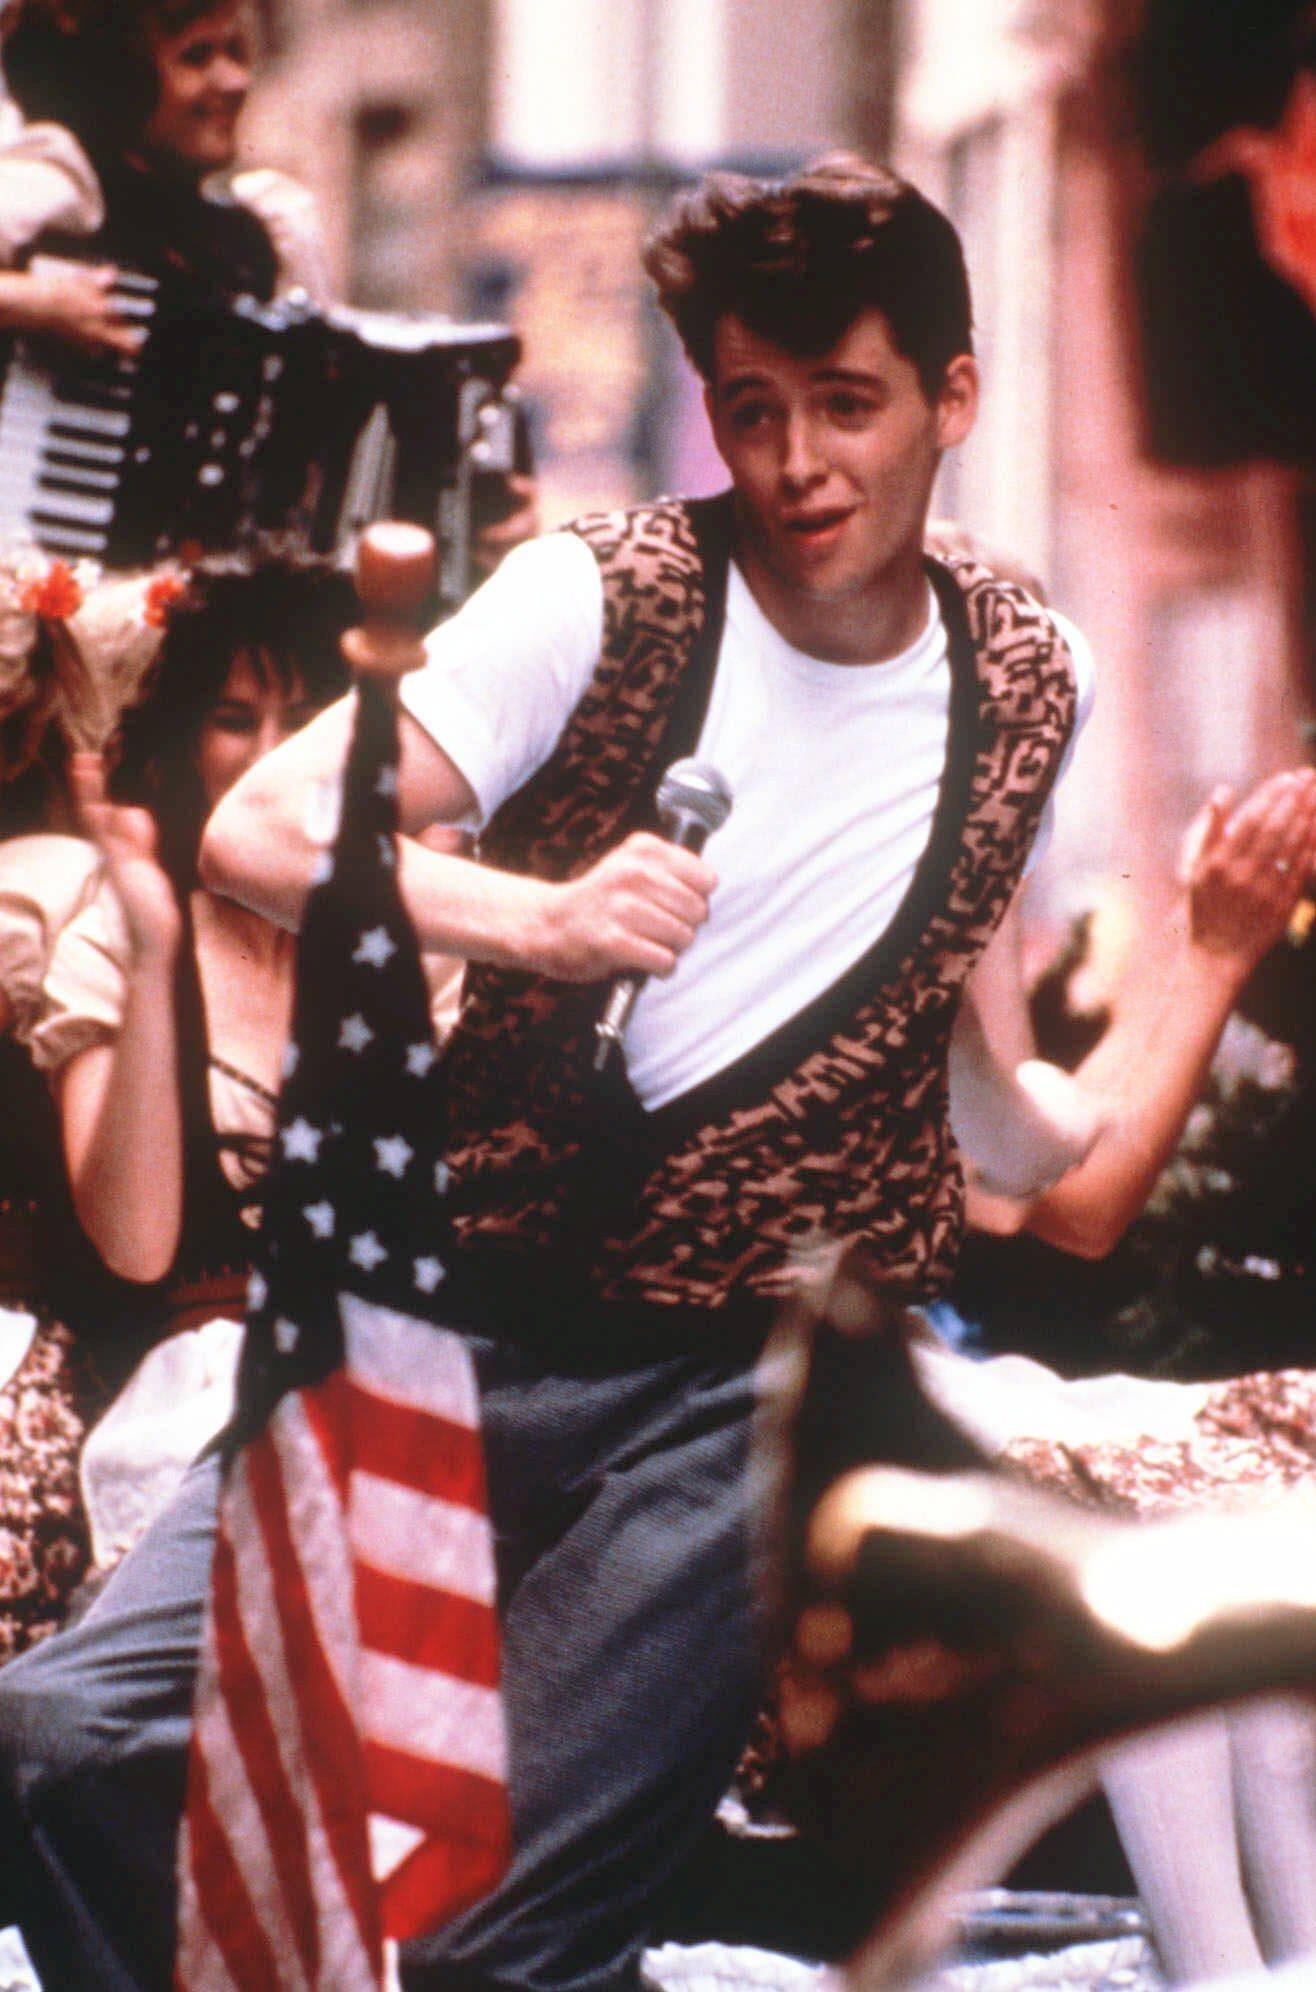 """Ferris Bueller's Day Off,"" the classic 1986 movie filmed in Chicago, will be the first movie ever shown at Wrigley Field Saturday night, Oct. 1."